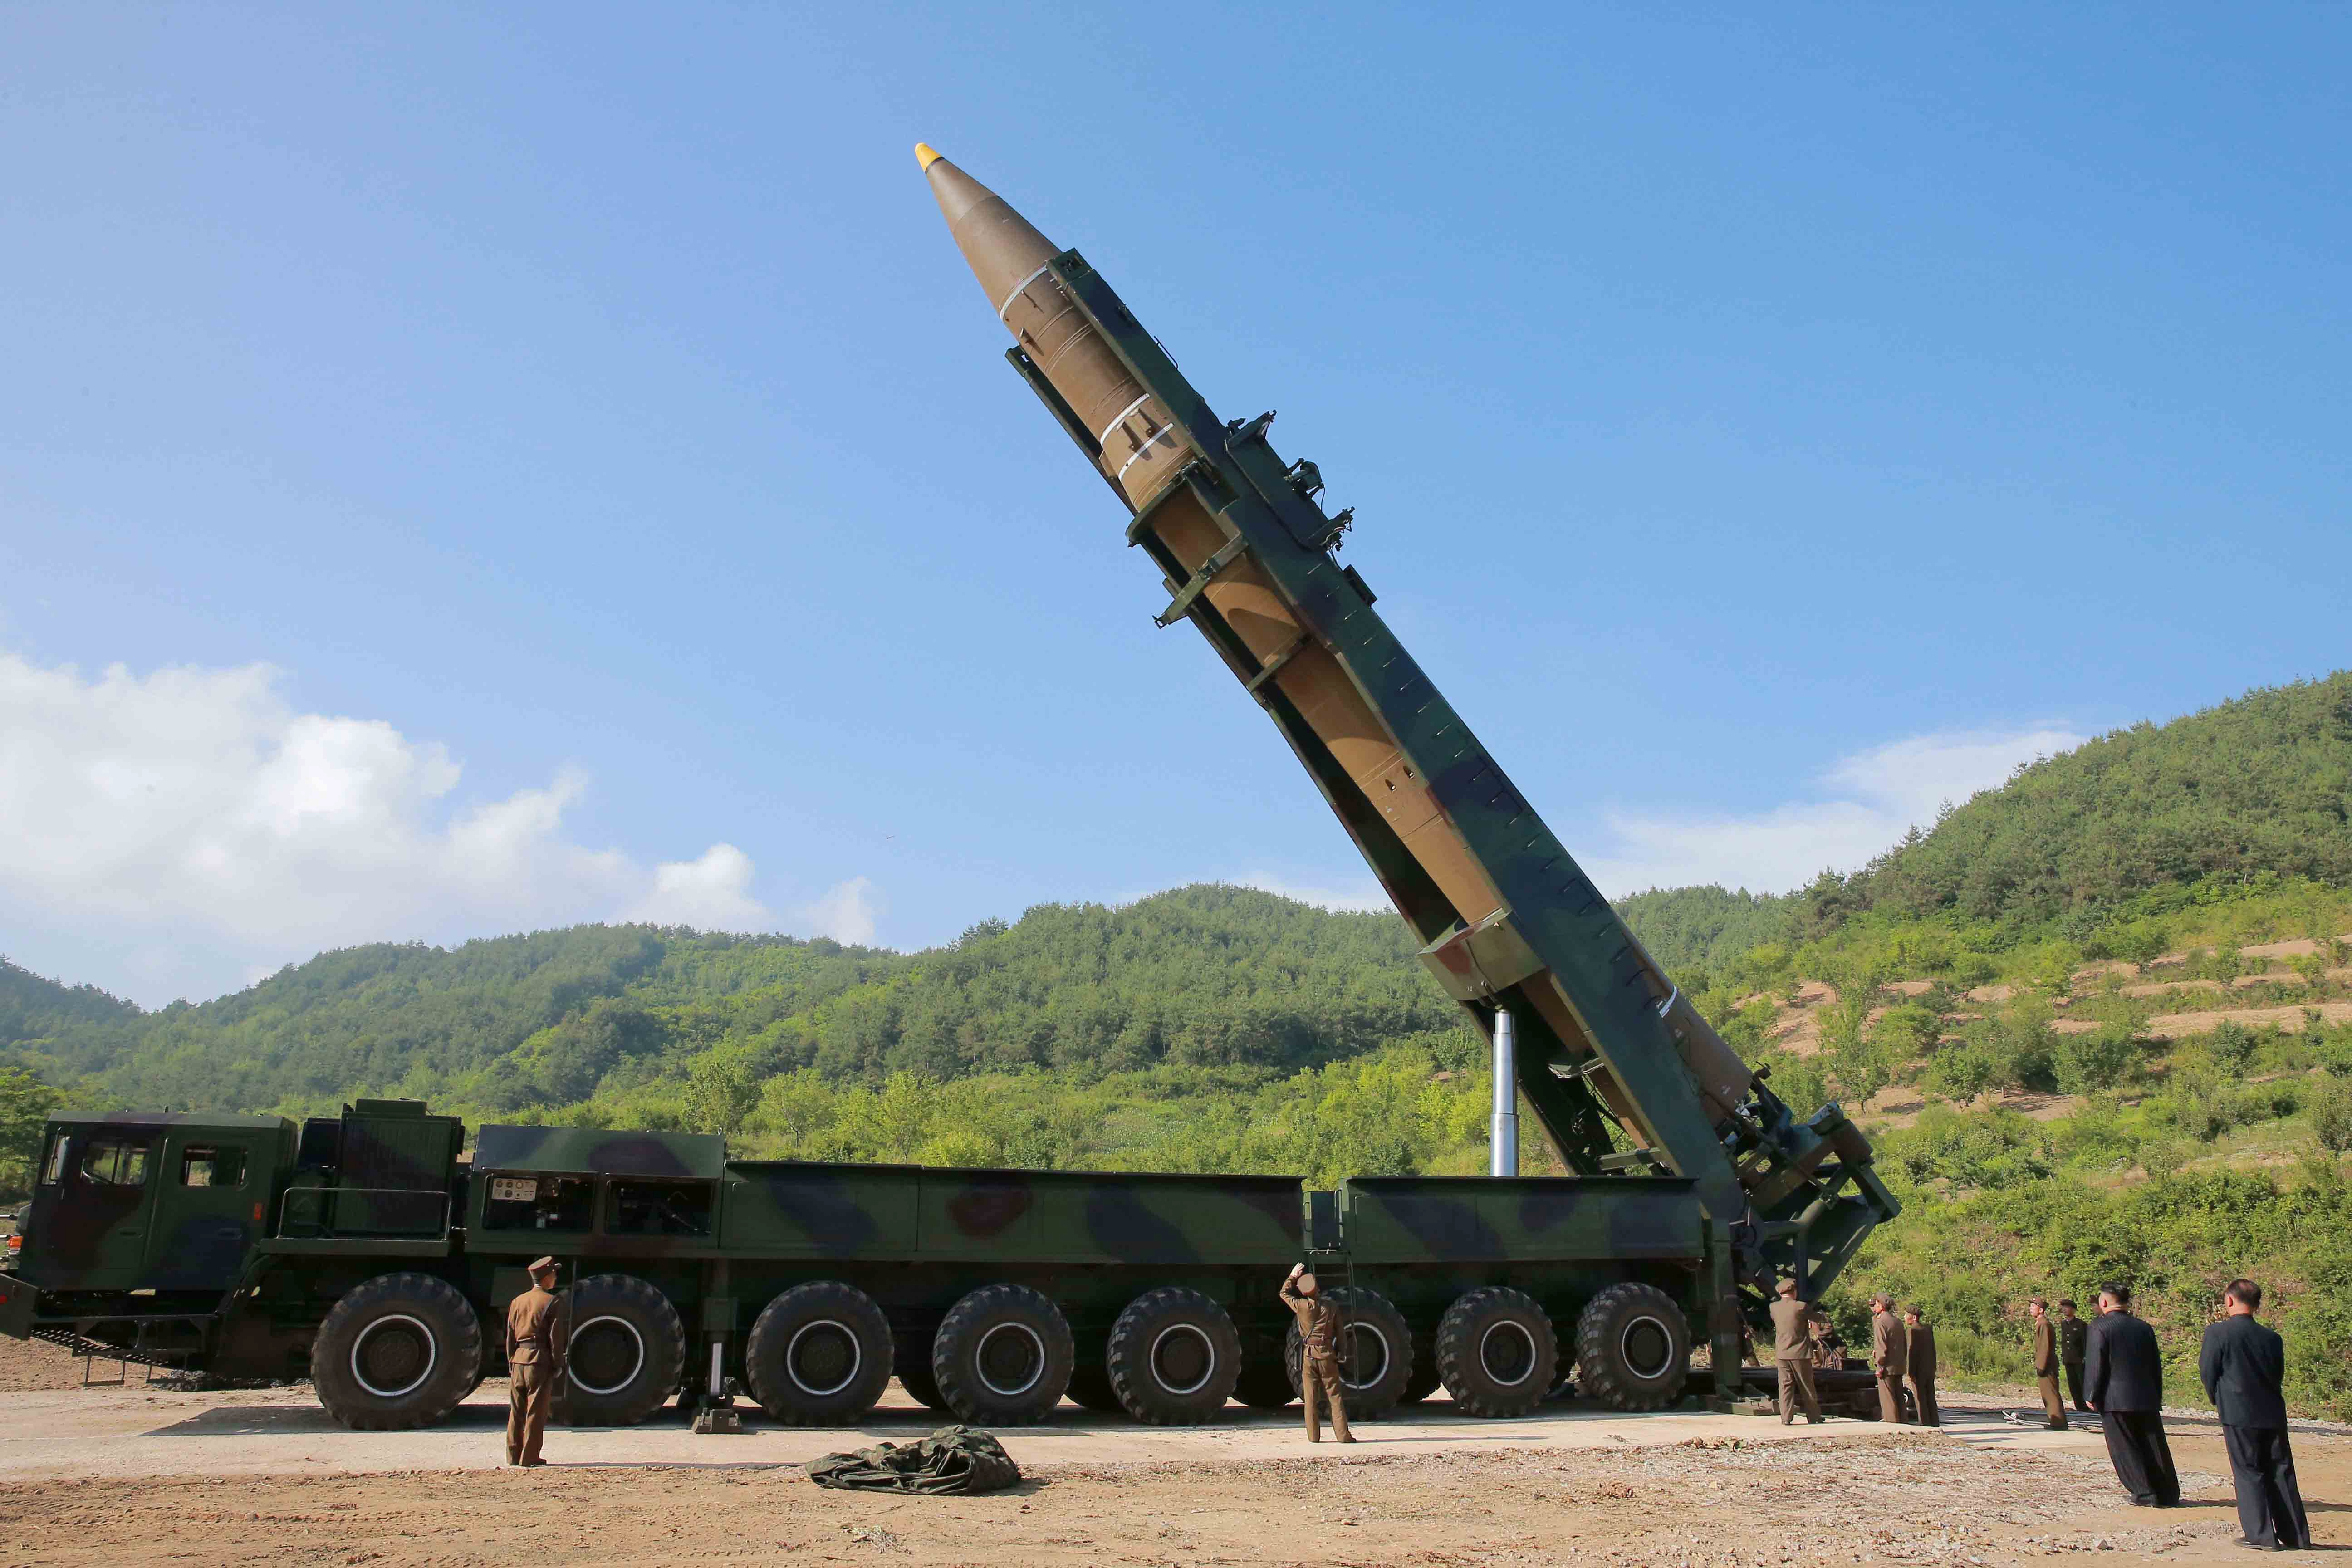 The intercontinental ballistic missile Hwasong-14. North Korea appeared to have used a Chinese truck, originally sold for hauling timber, but converted for military use, to transport and erect the missile on Tuesday.